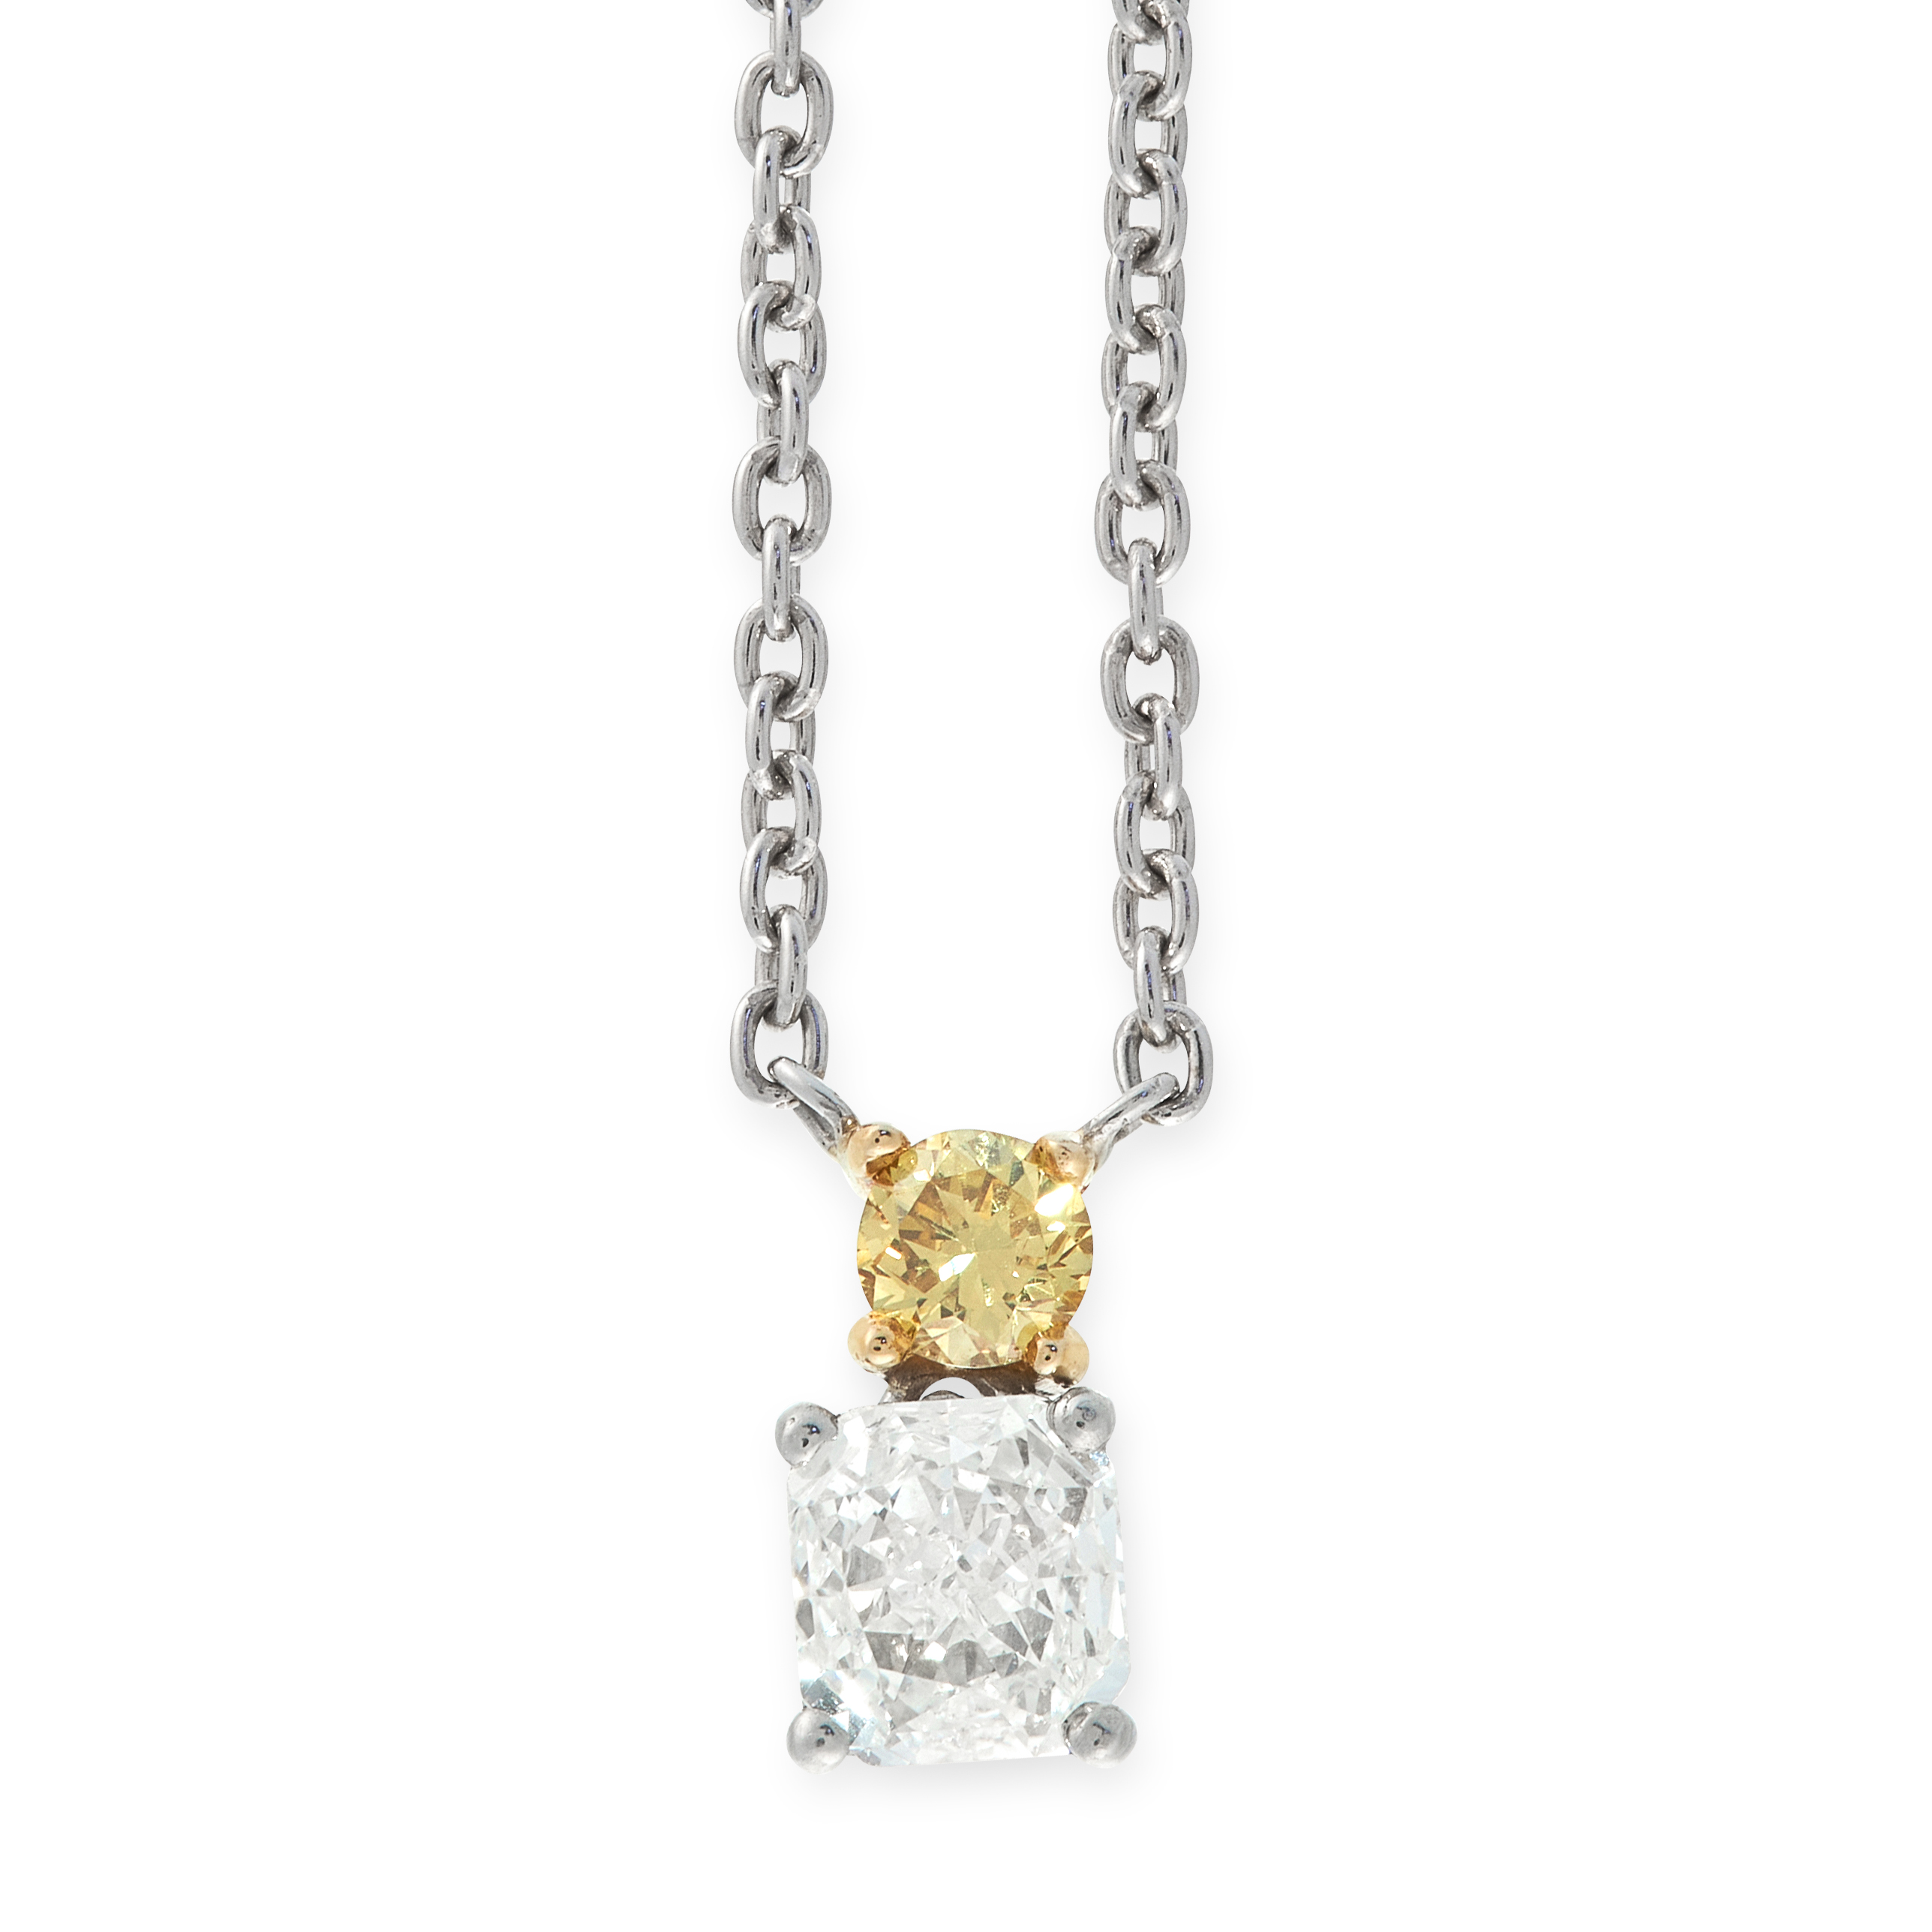 A YELLOW AND WHITE DIAMOND PENDANT NECKLACE, HIRSH in platinum, comprising of a round cut yellow